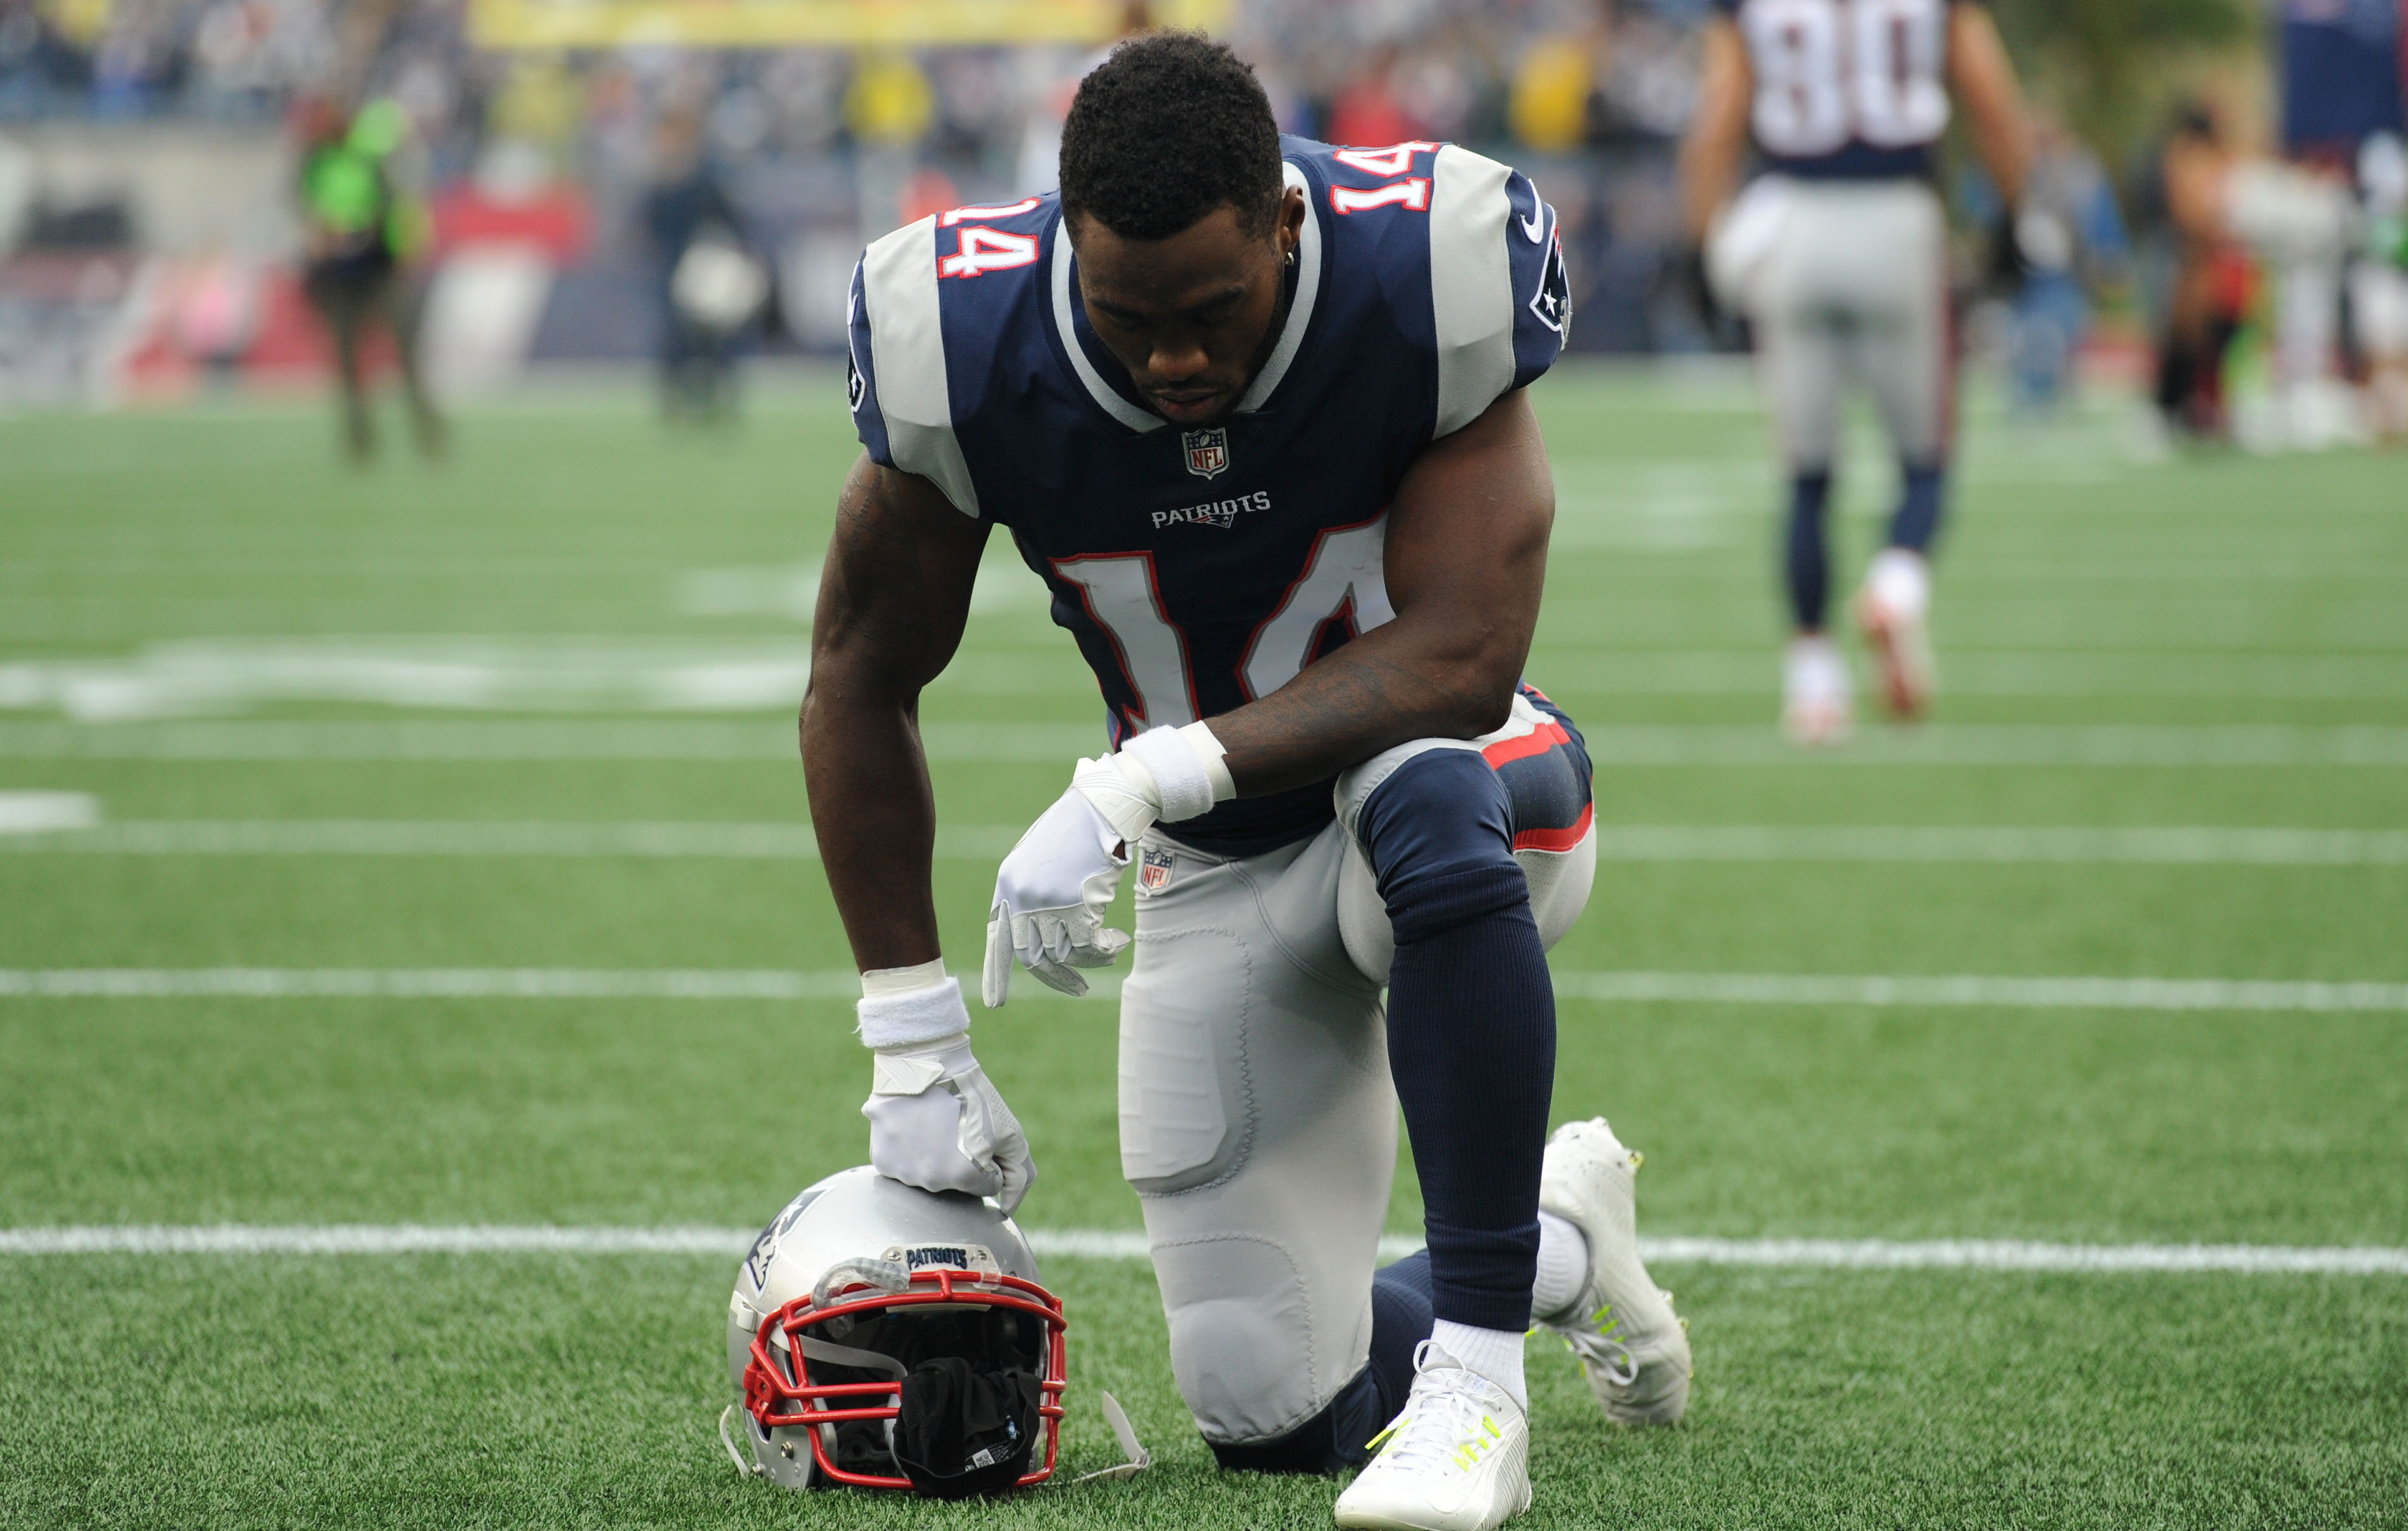 New England Patriots WR Brandin Cooks kneels prior to a game against the Los Angeles Chargers in Week 8 of the 2017 season